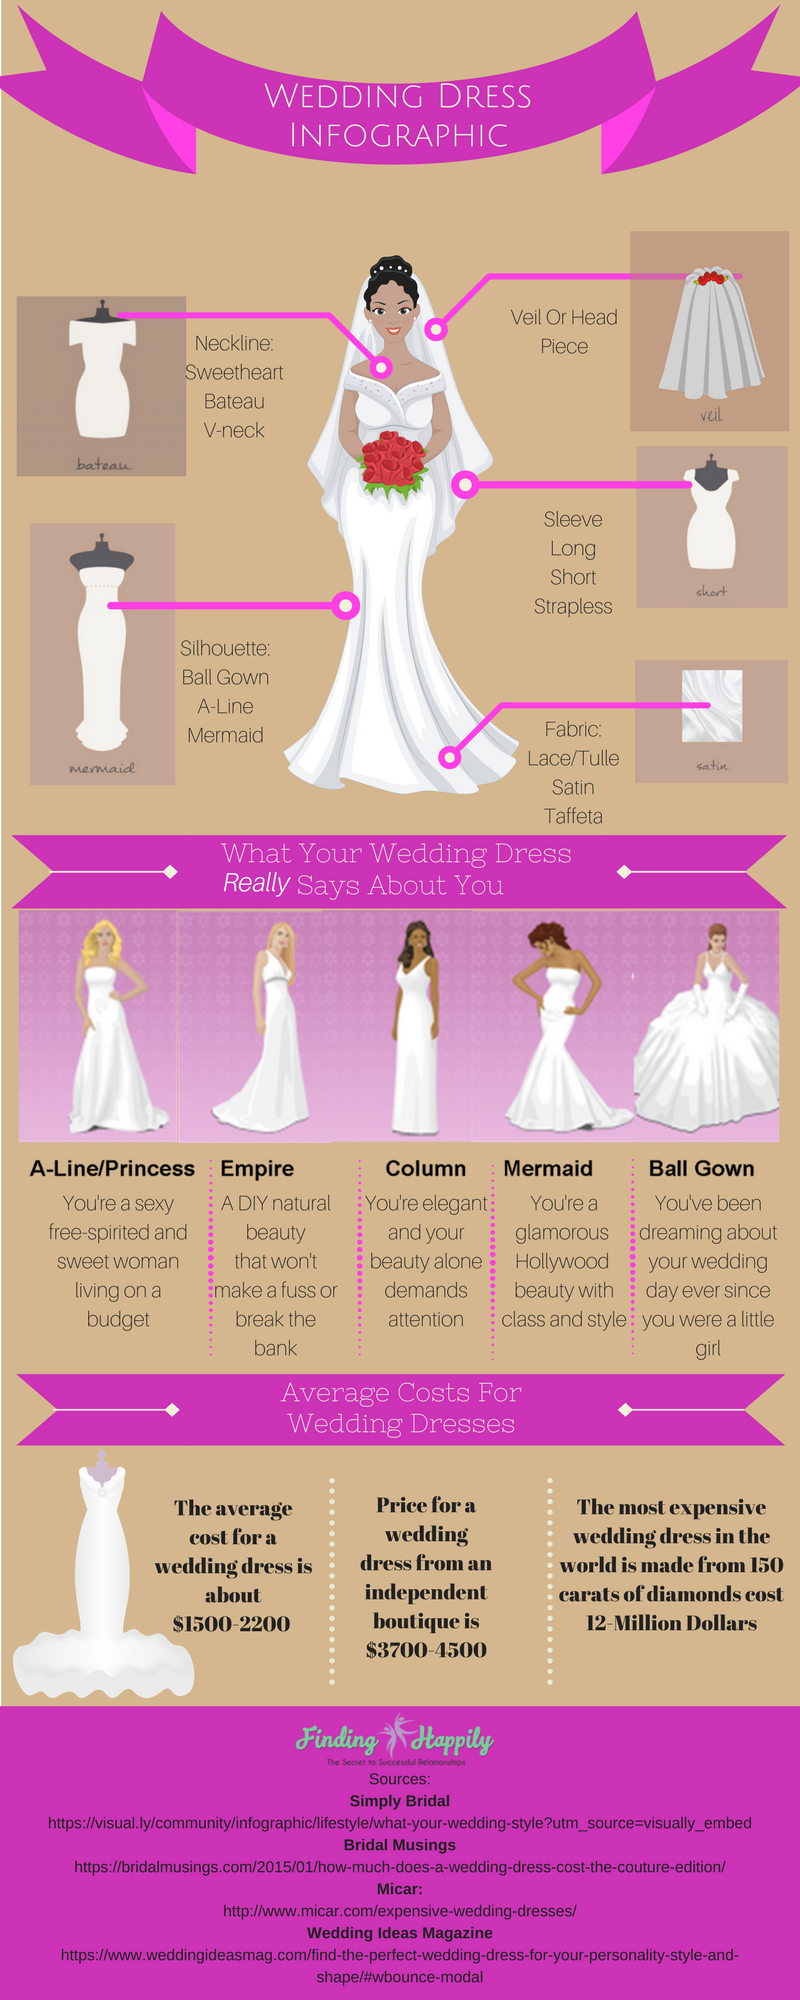 Wedding Dress Infographic: What Your Wedding Dress Really Says About You